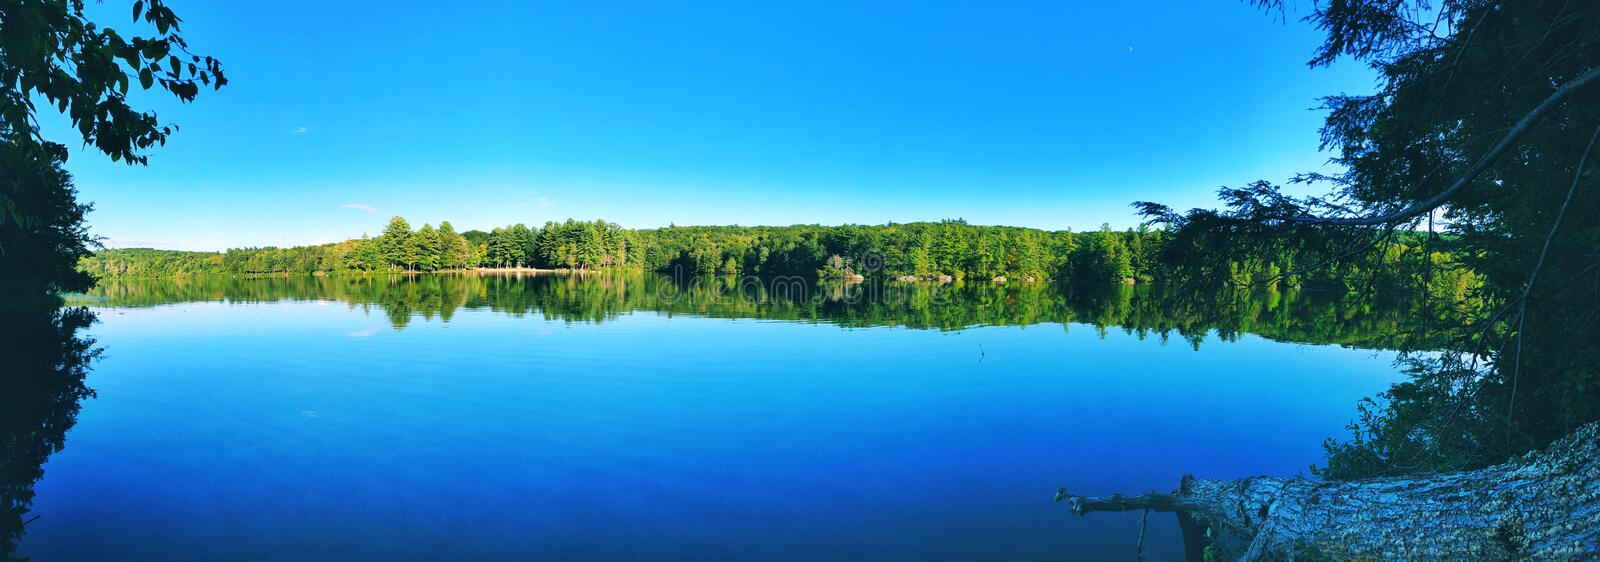 Burr pond state park beautiful summer and autumn lake views royalty free stock images